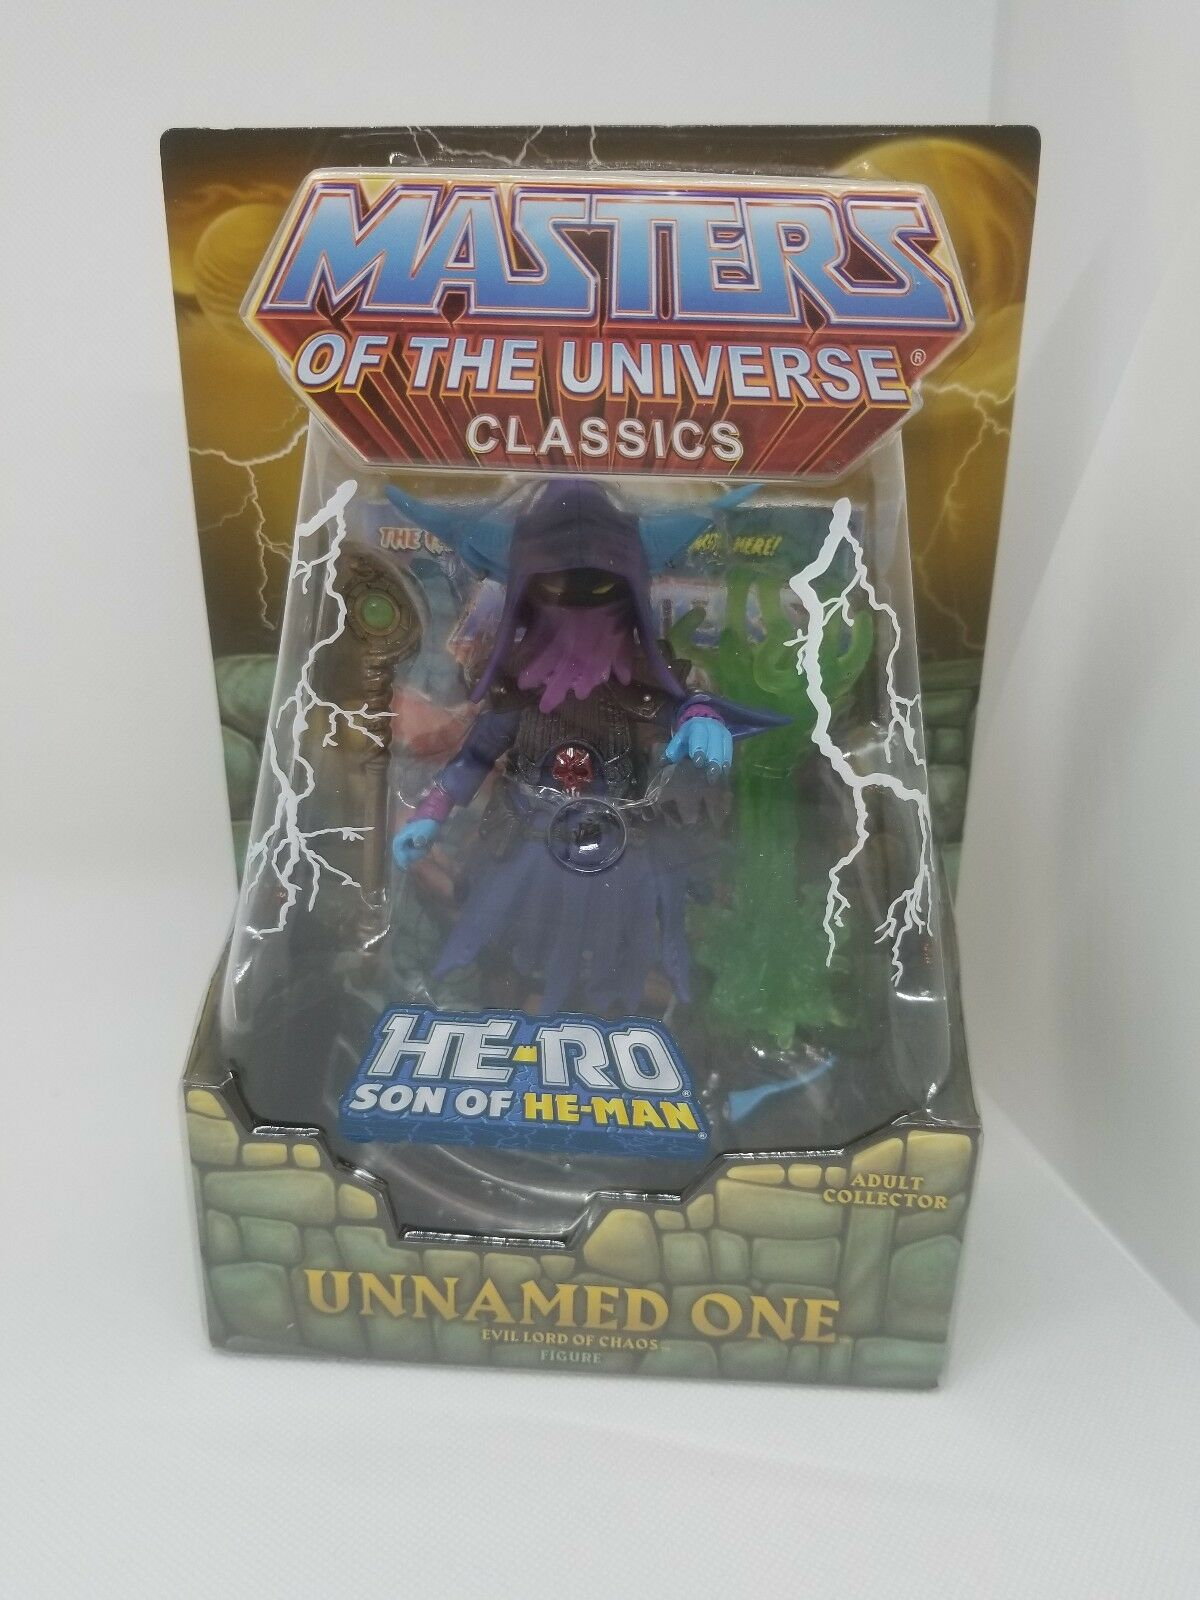 UNNAMED ONE MASTERS OF THE UNIVERSE CLASSICS MOTUC MOTU He-Ro Son of HE-MAN